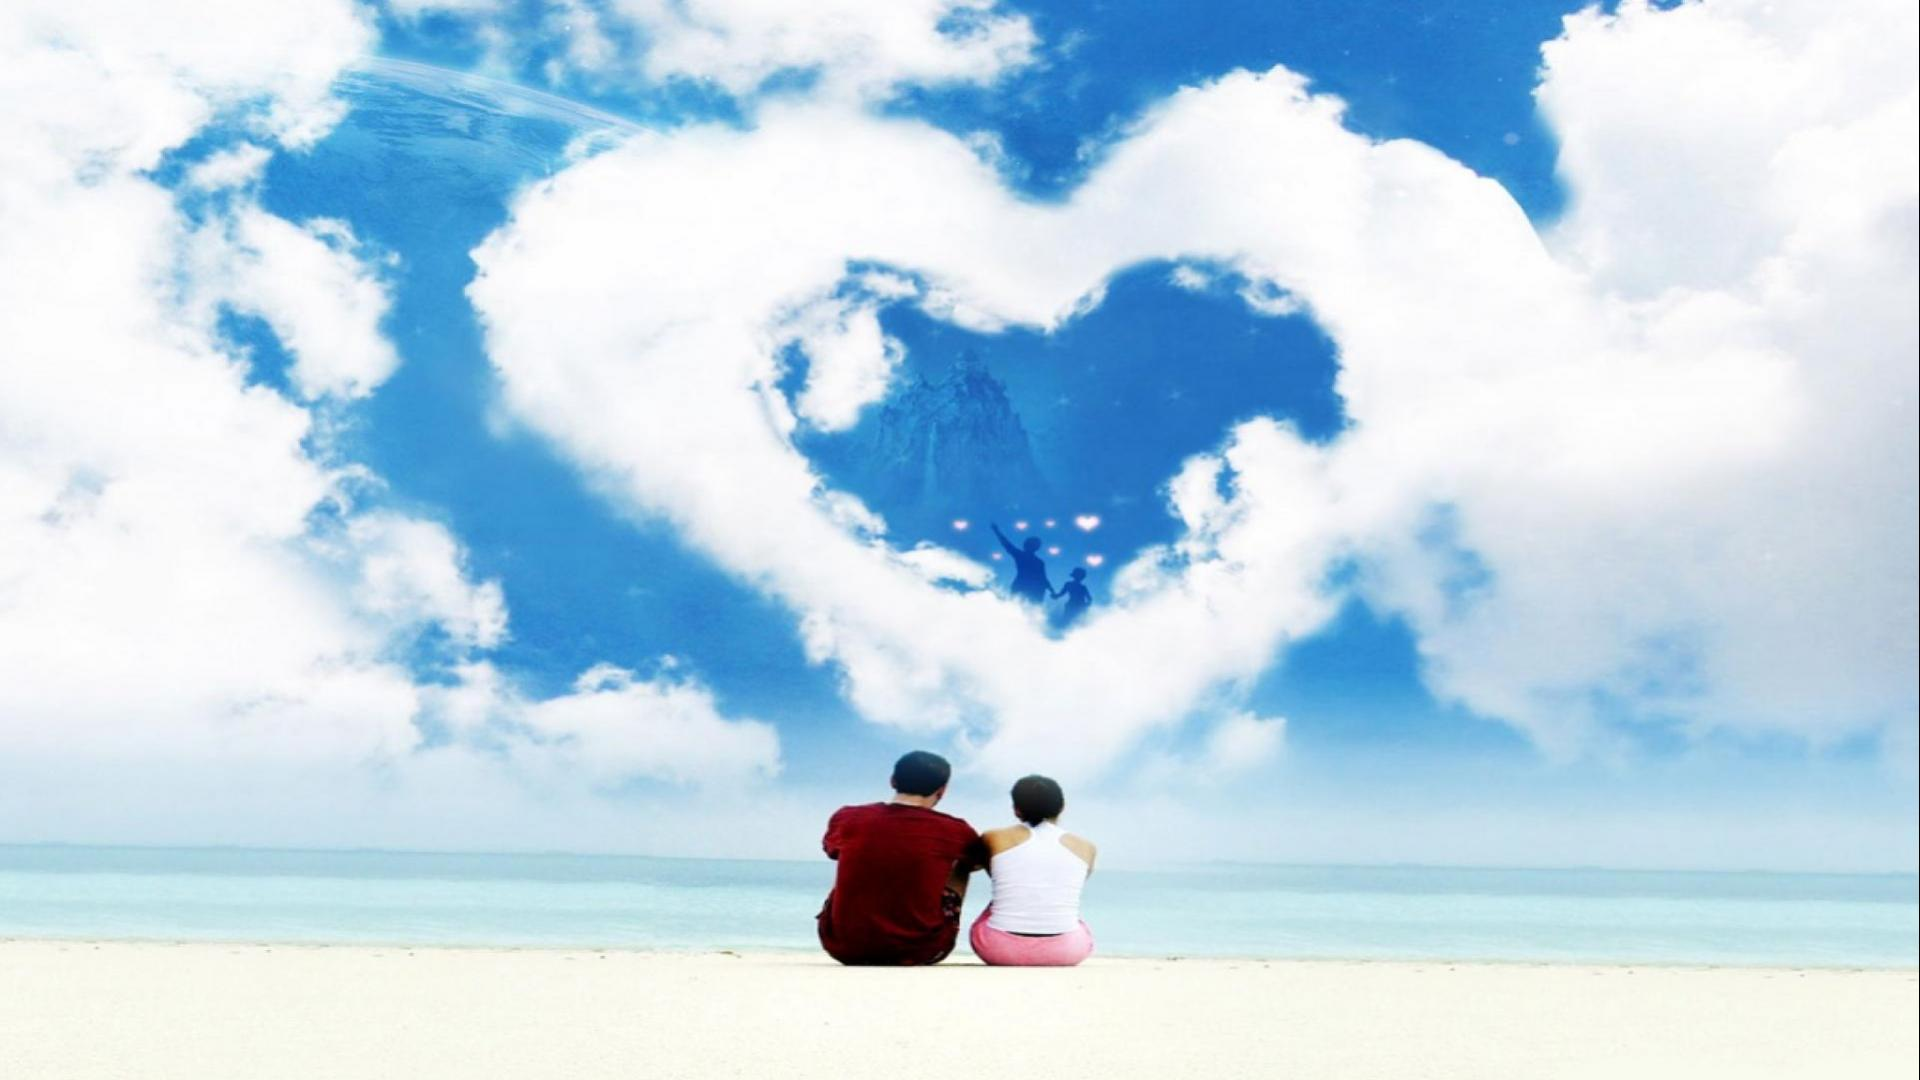 Cute Animated Dolls Wallpapers Heart Shaped Cloud 17 Of 57 Animated Romantic Love Cloud